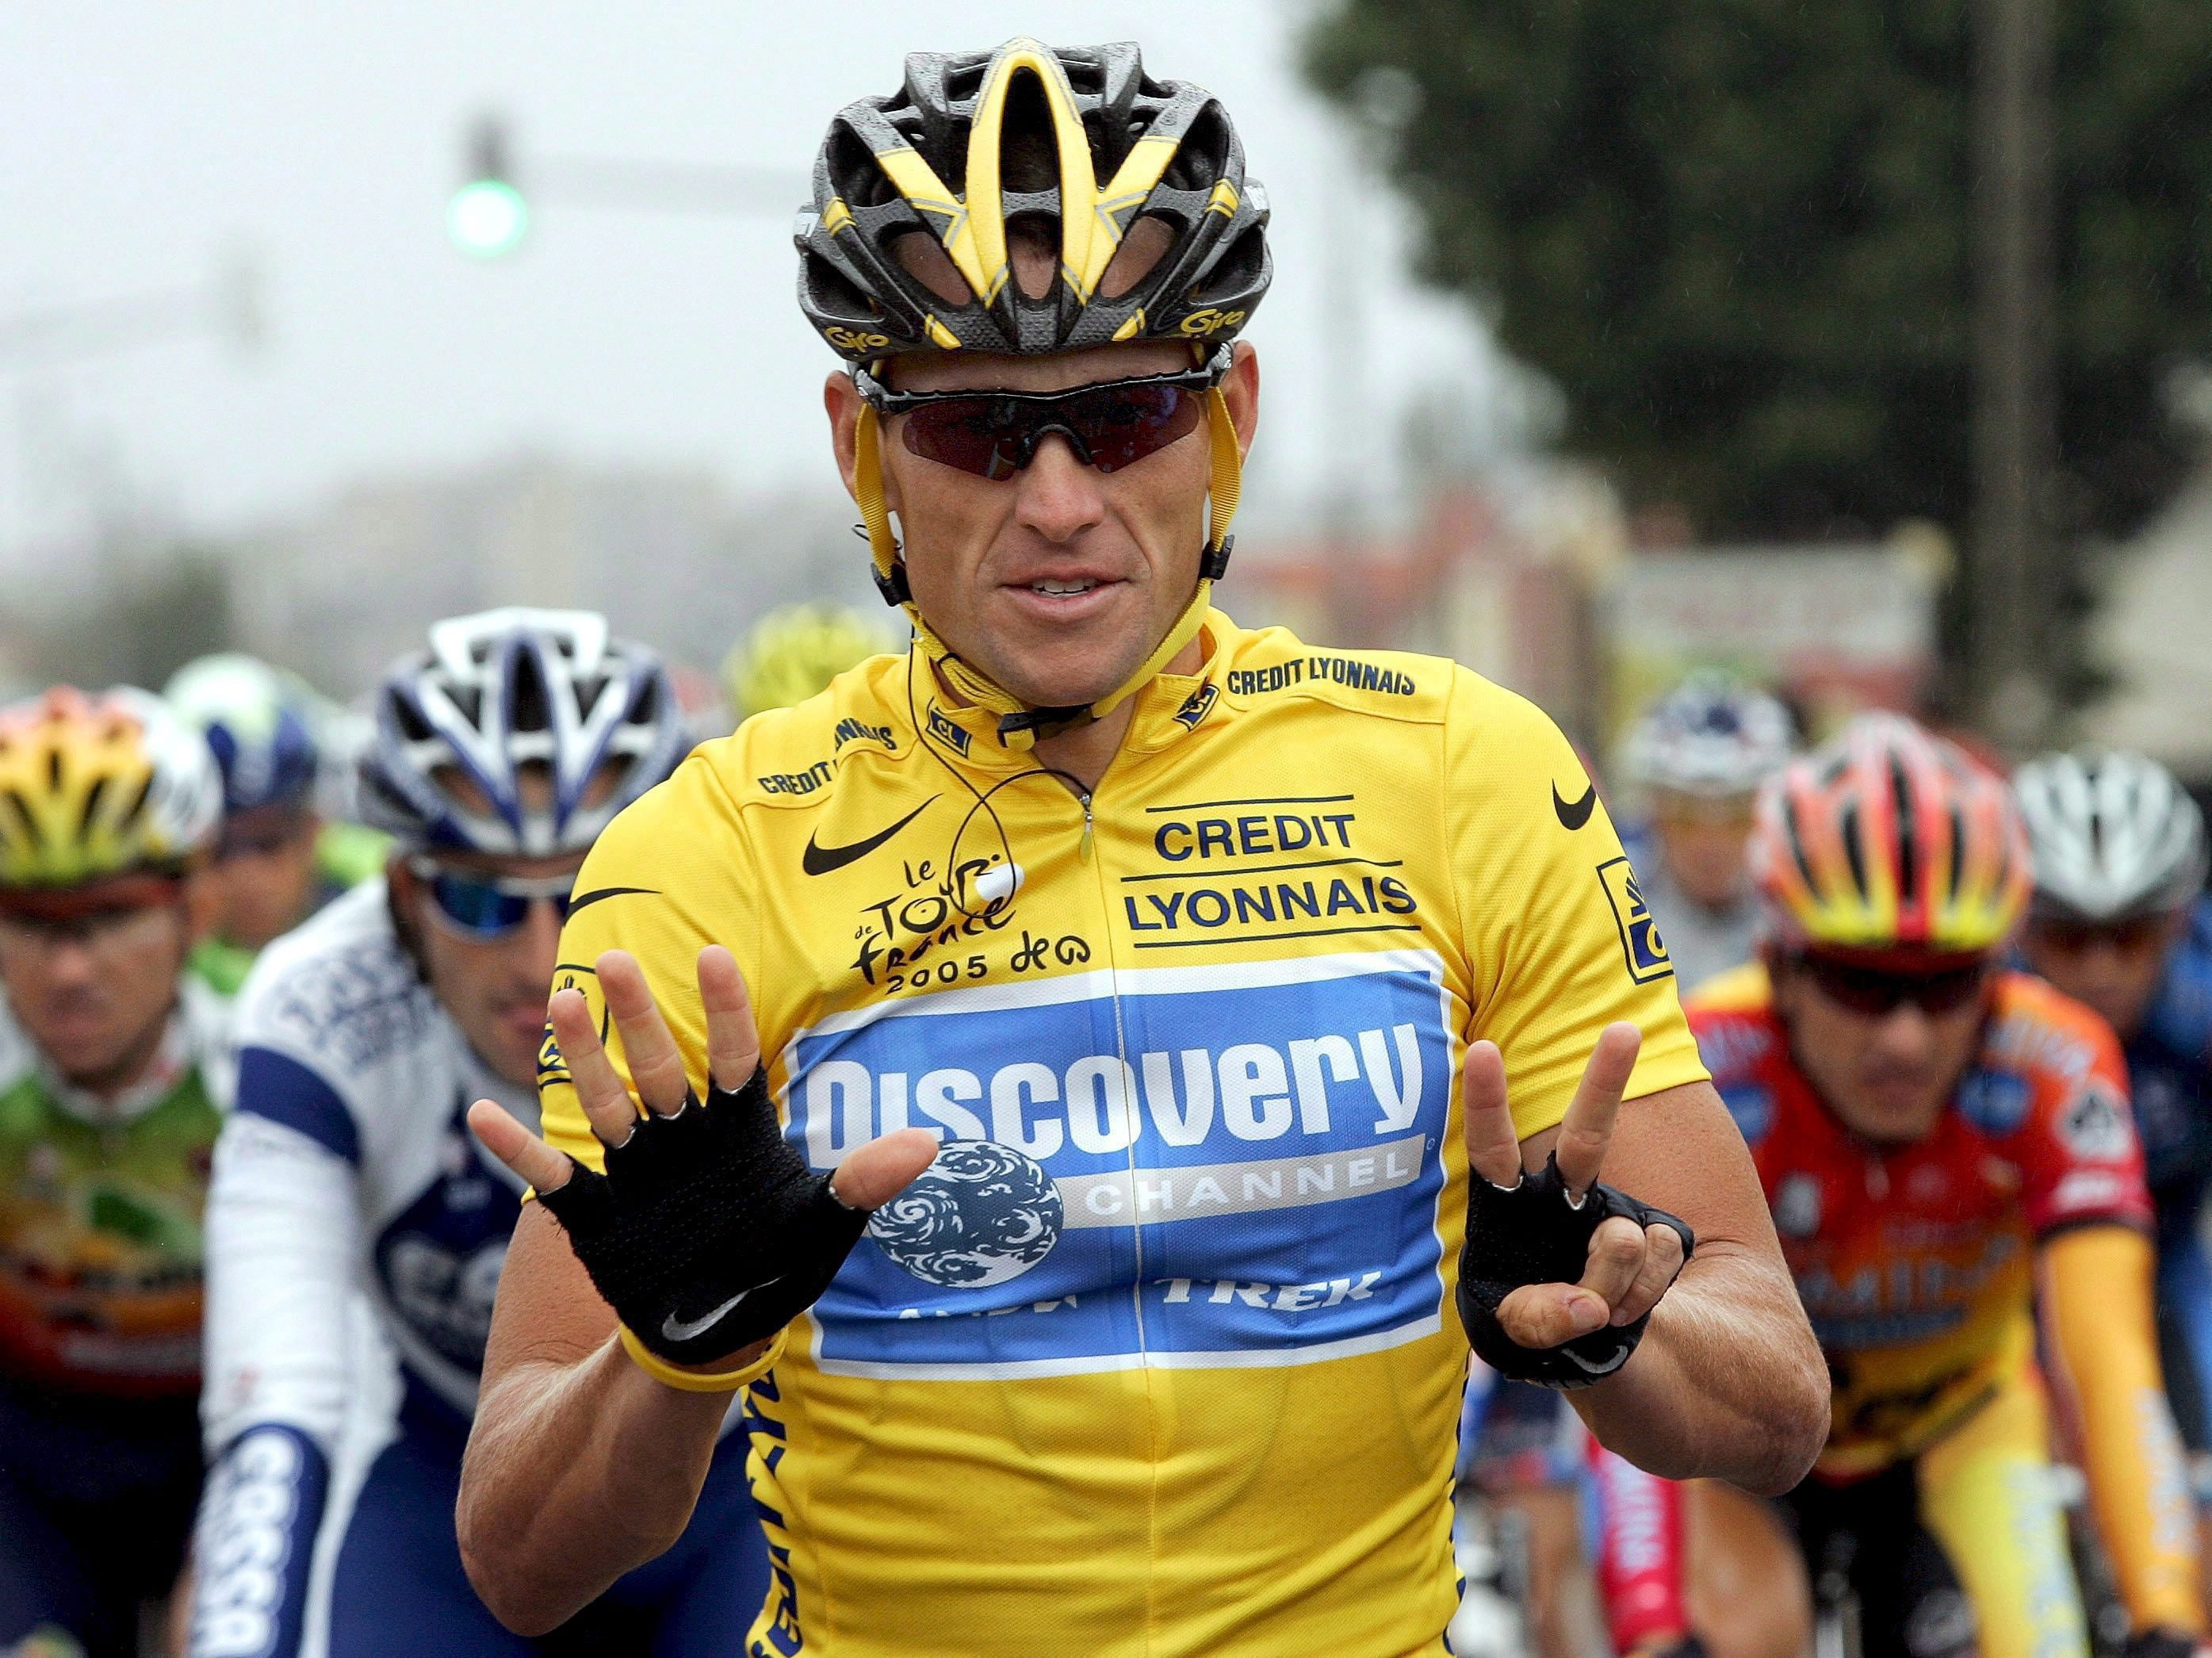 lance armstrong sponsorship deals